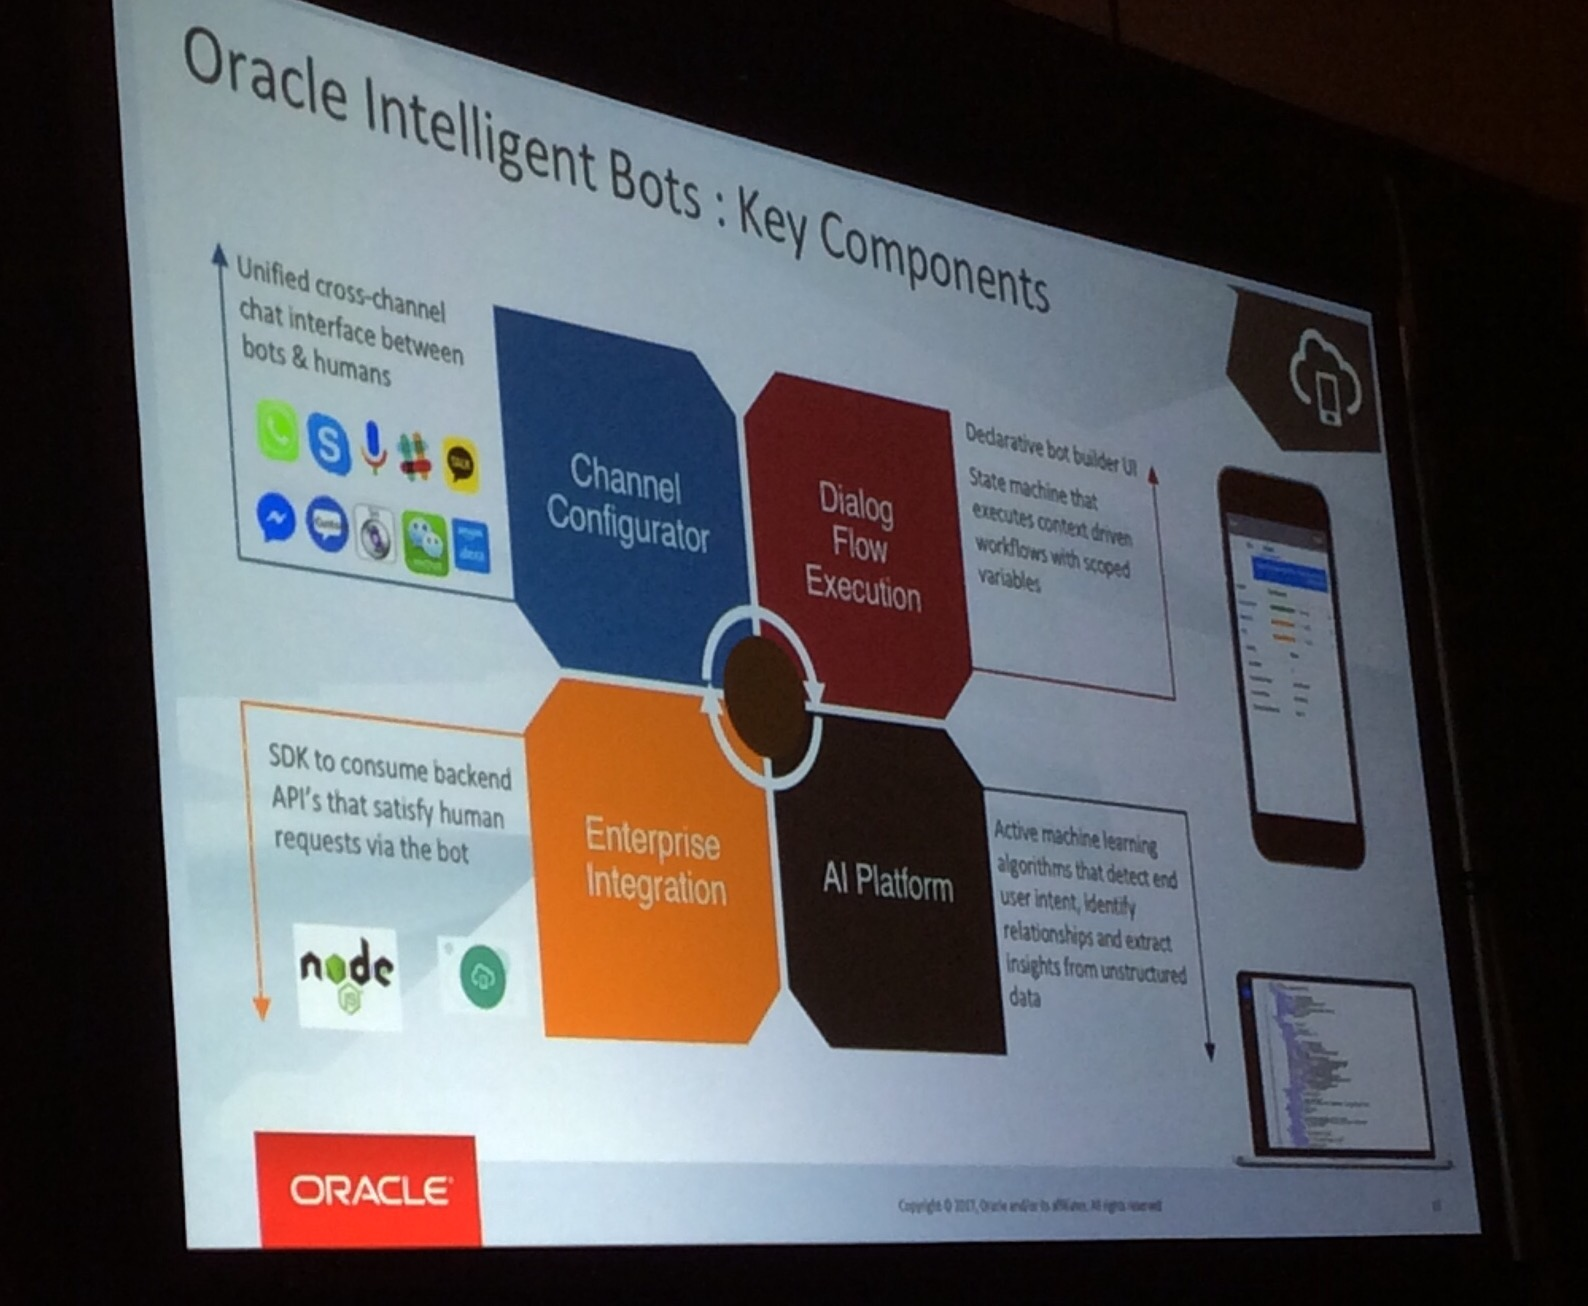 Introducing Oracle's intelligent Bots